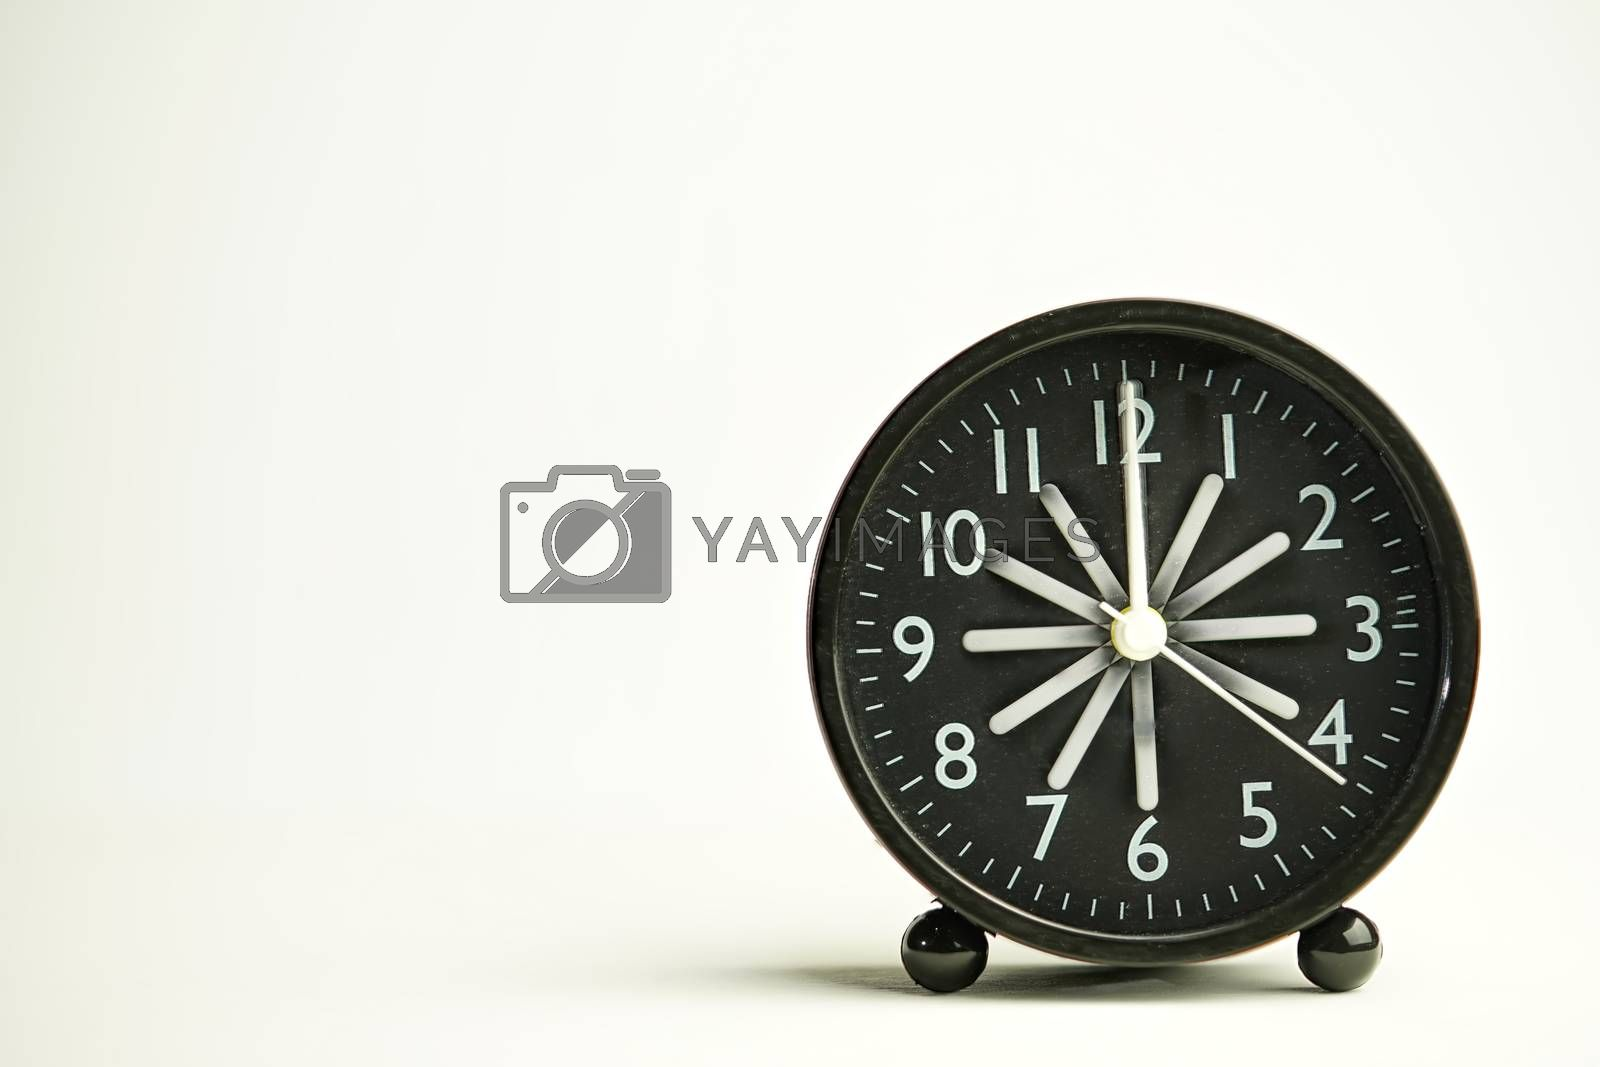 Abstract black analog alarm clock close-up inside being dusted island vintage style isolated white background with copy space. Use the Radius Blur technique.